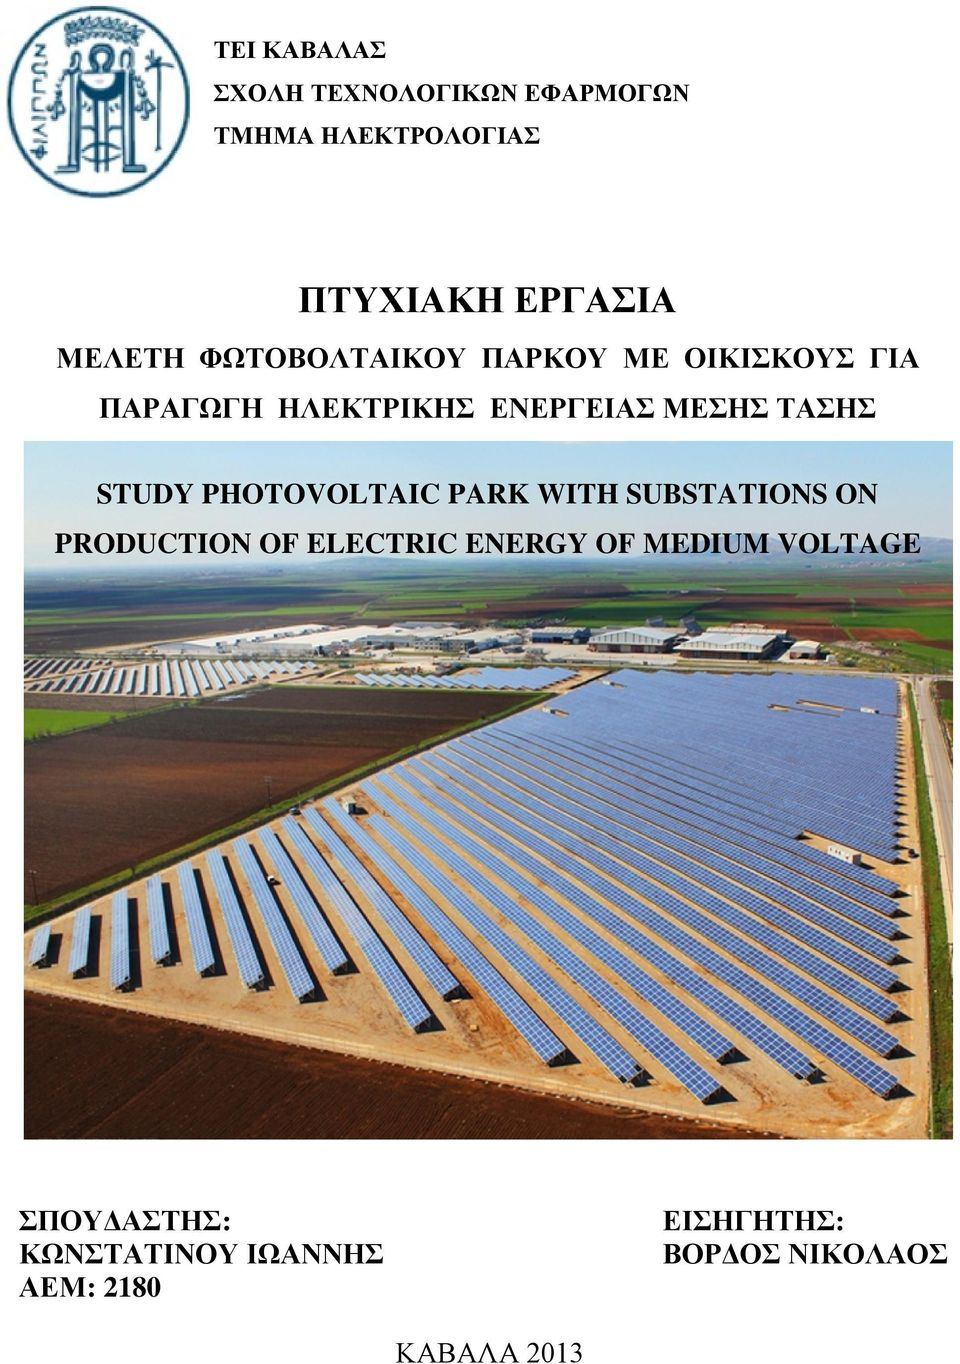 STUDY PHOTOVOLTAIC PARK WITH SUBSTATIONS ON PRODUCTION OF ELECTRIC ENERGY OF MEDIUM